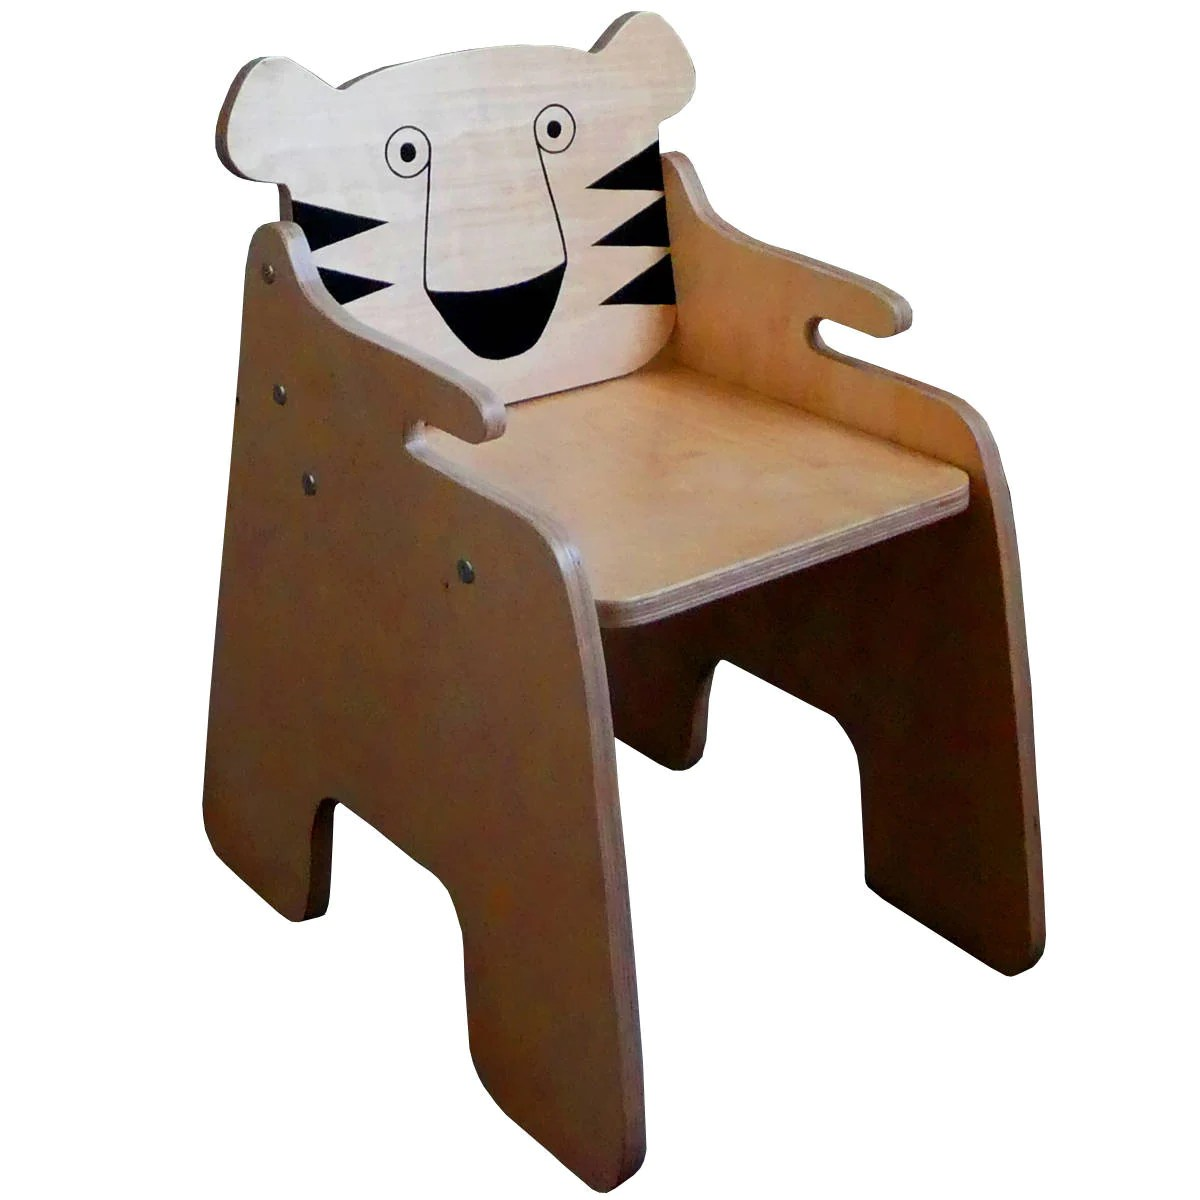 Toddler Wooden Chair Tiger Chair Toddler Chair Kids Wooden Chair Safari Nursery Jungle Kids Bedroom Animal Chair Kids Furniture Handmade Eco Friendly